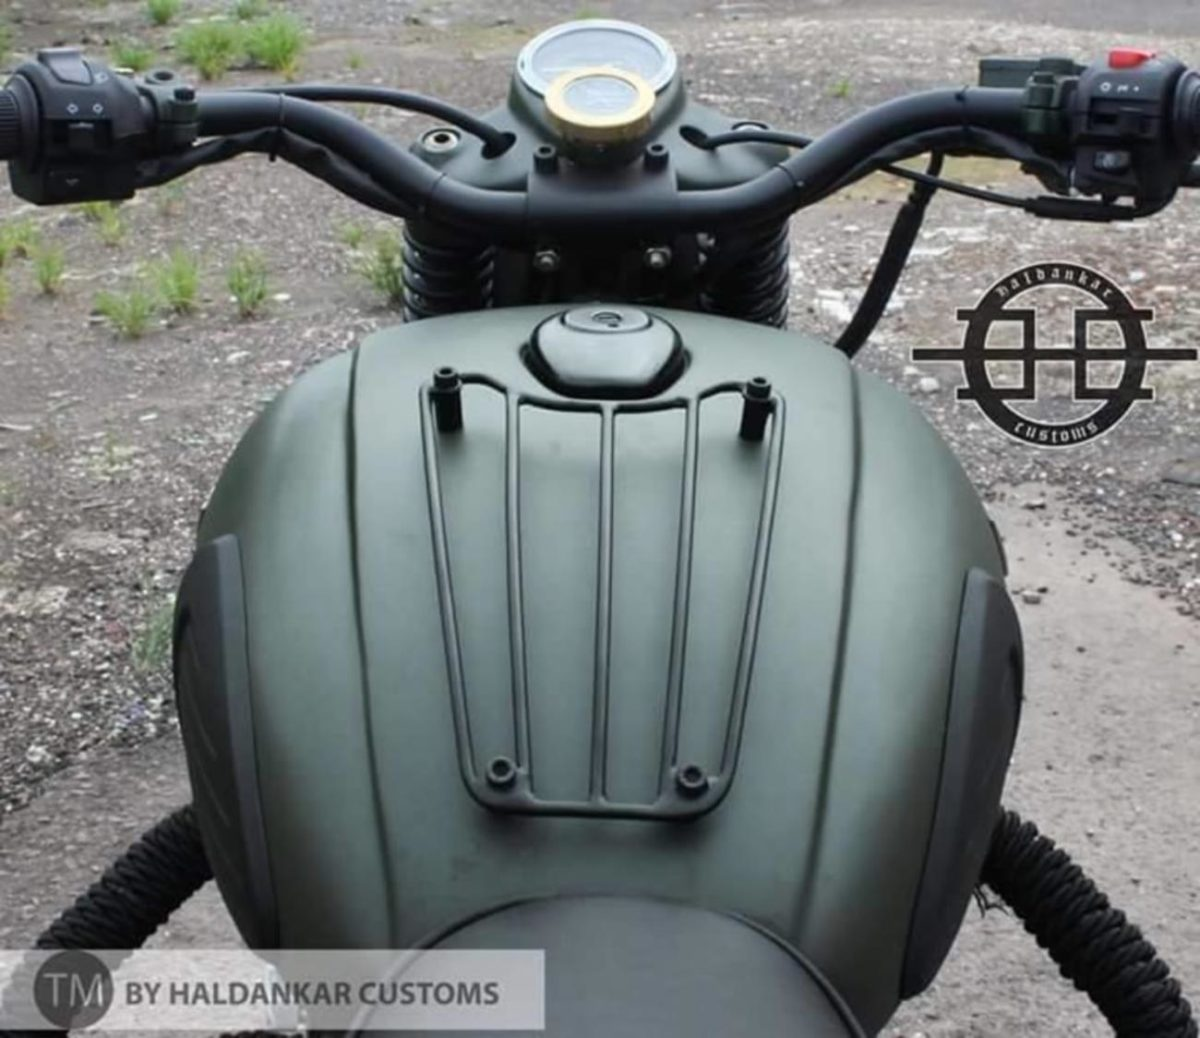 Encode Royal enfield classic 350 (2)